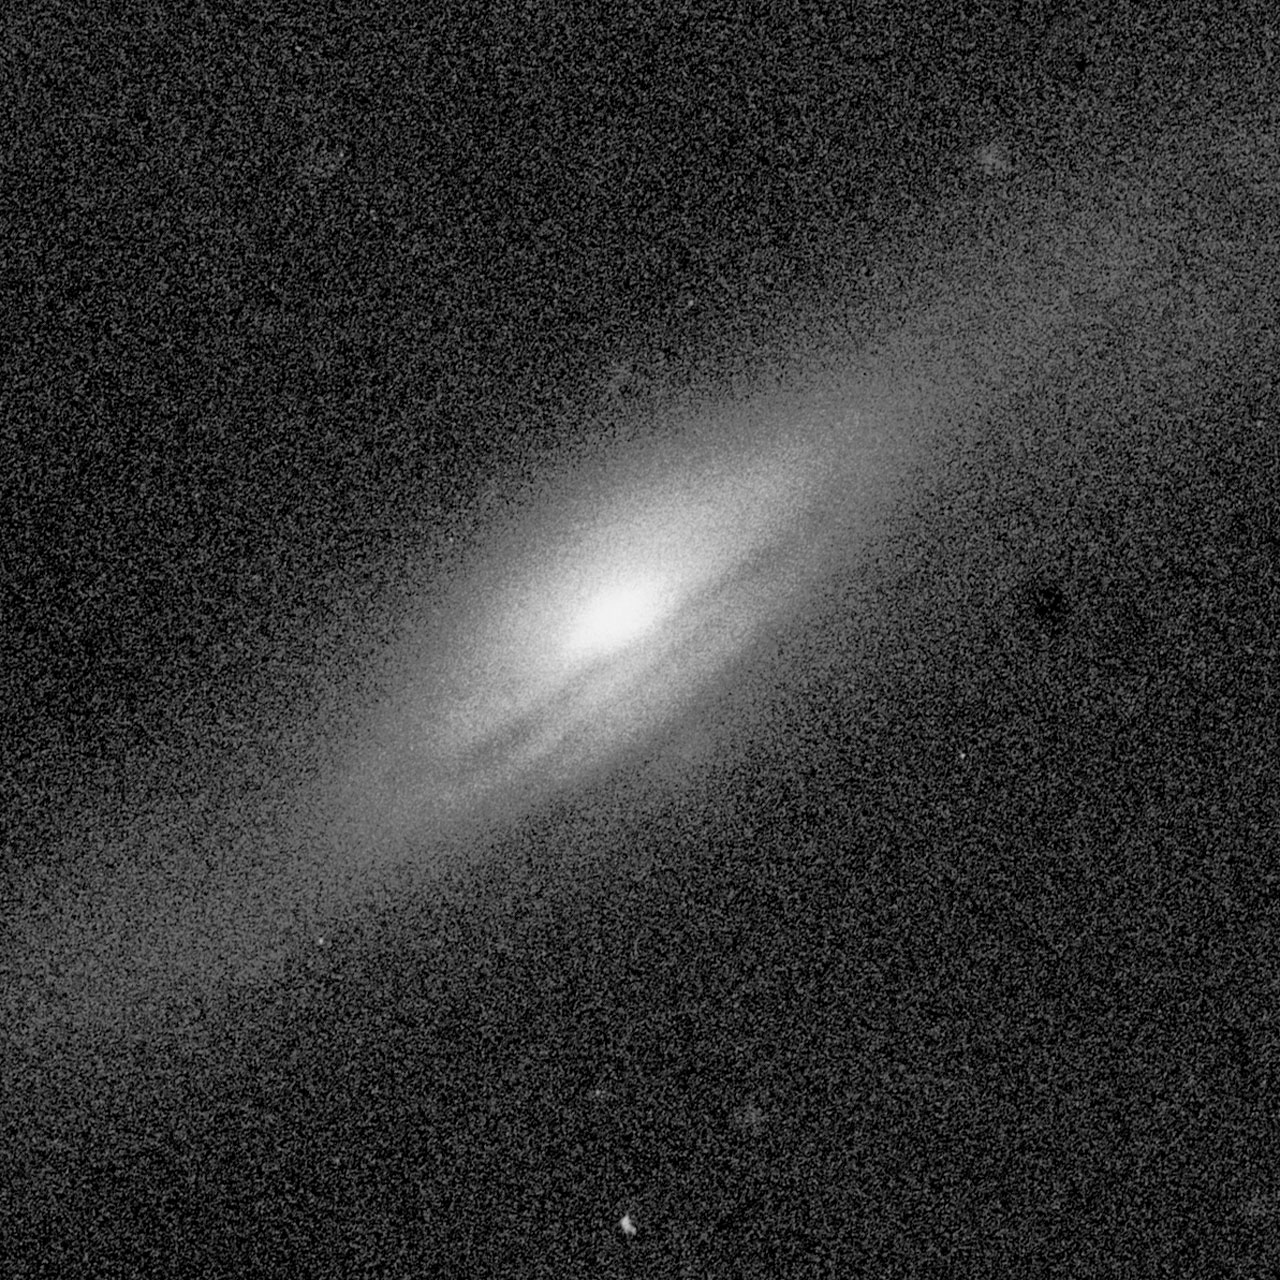 Central Bulges of Spiral Galaxies - NGC 5689 (Ground-Based View)